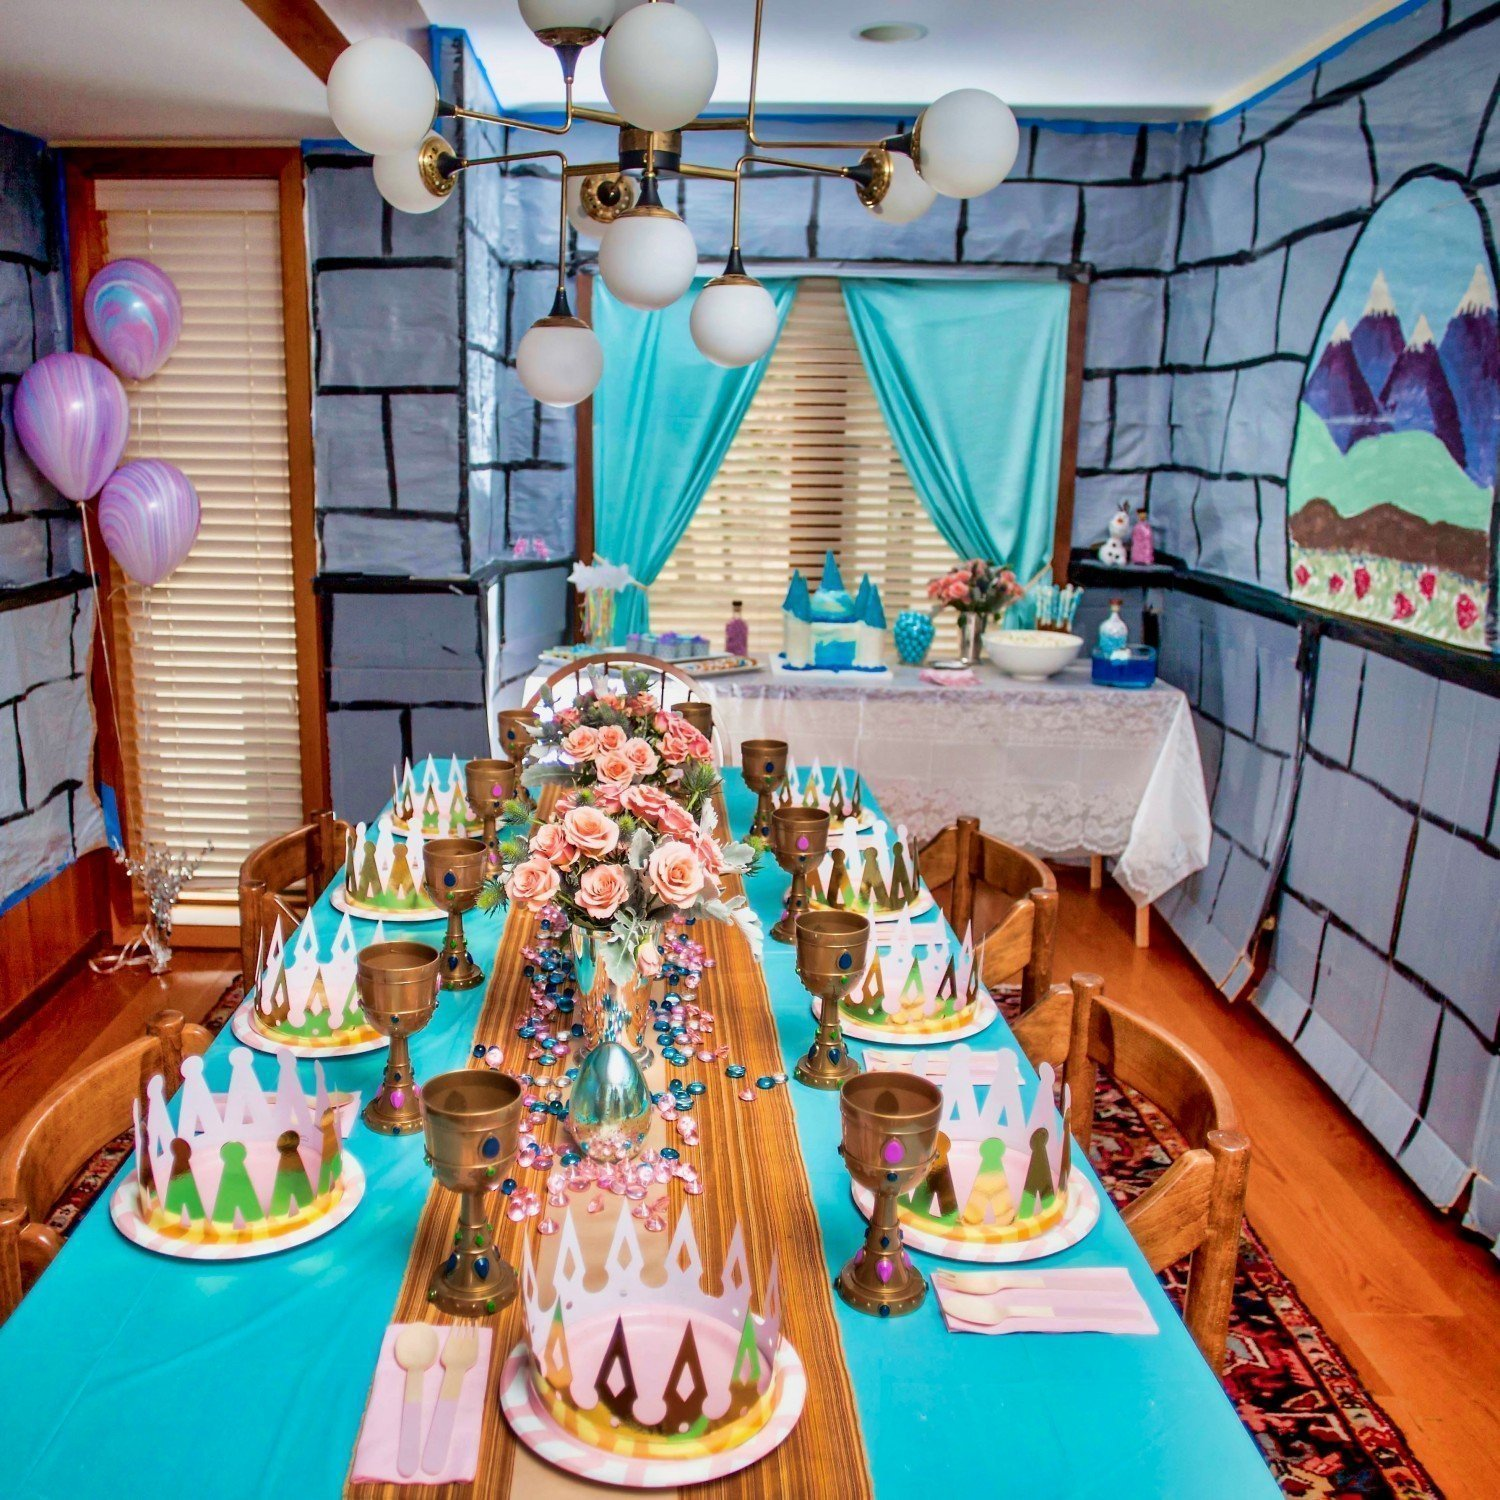 Complete princess party room with wall decorations and set table